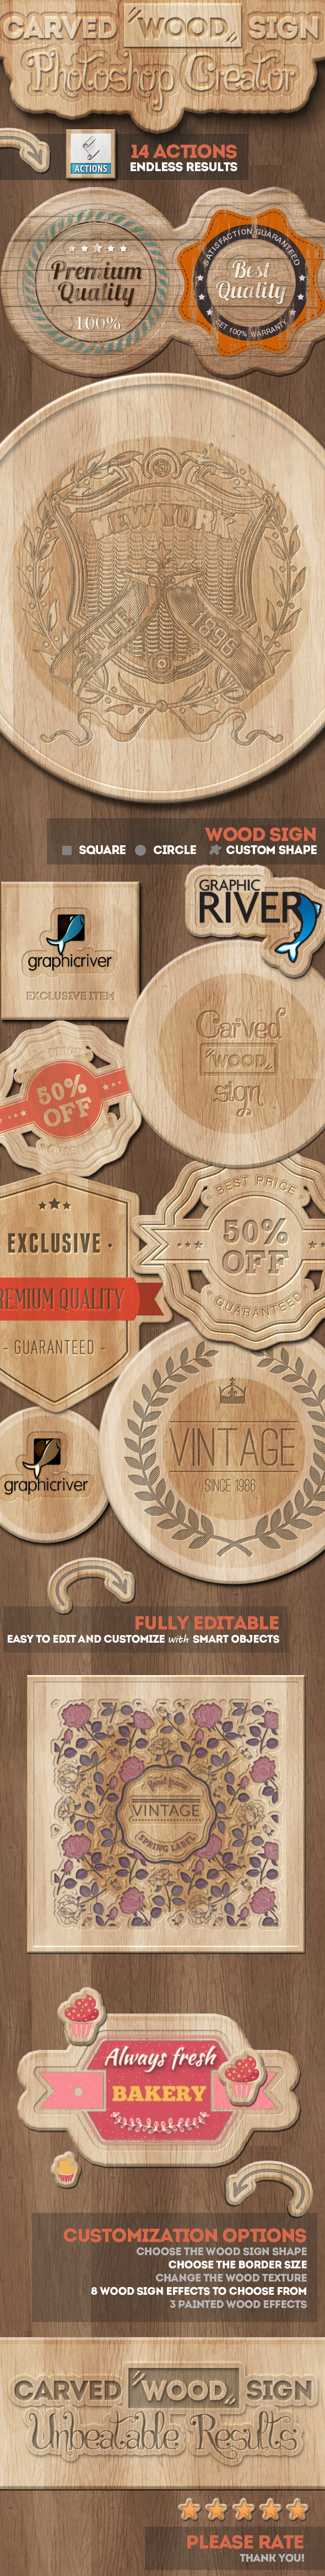 GraphicRiver Carved Wood Sign Photoshop Creator 11627466